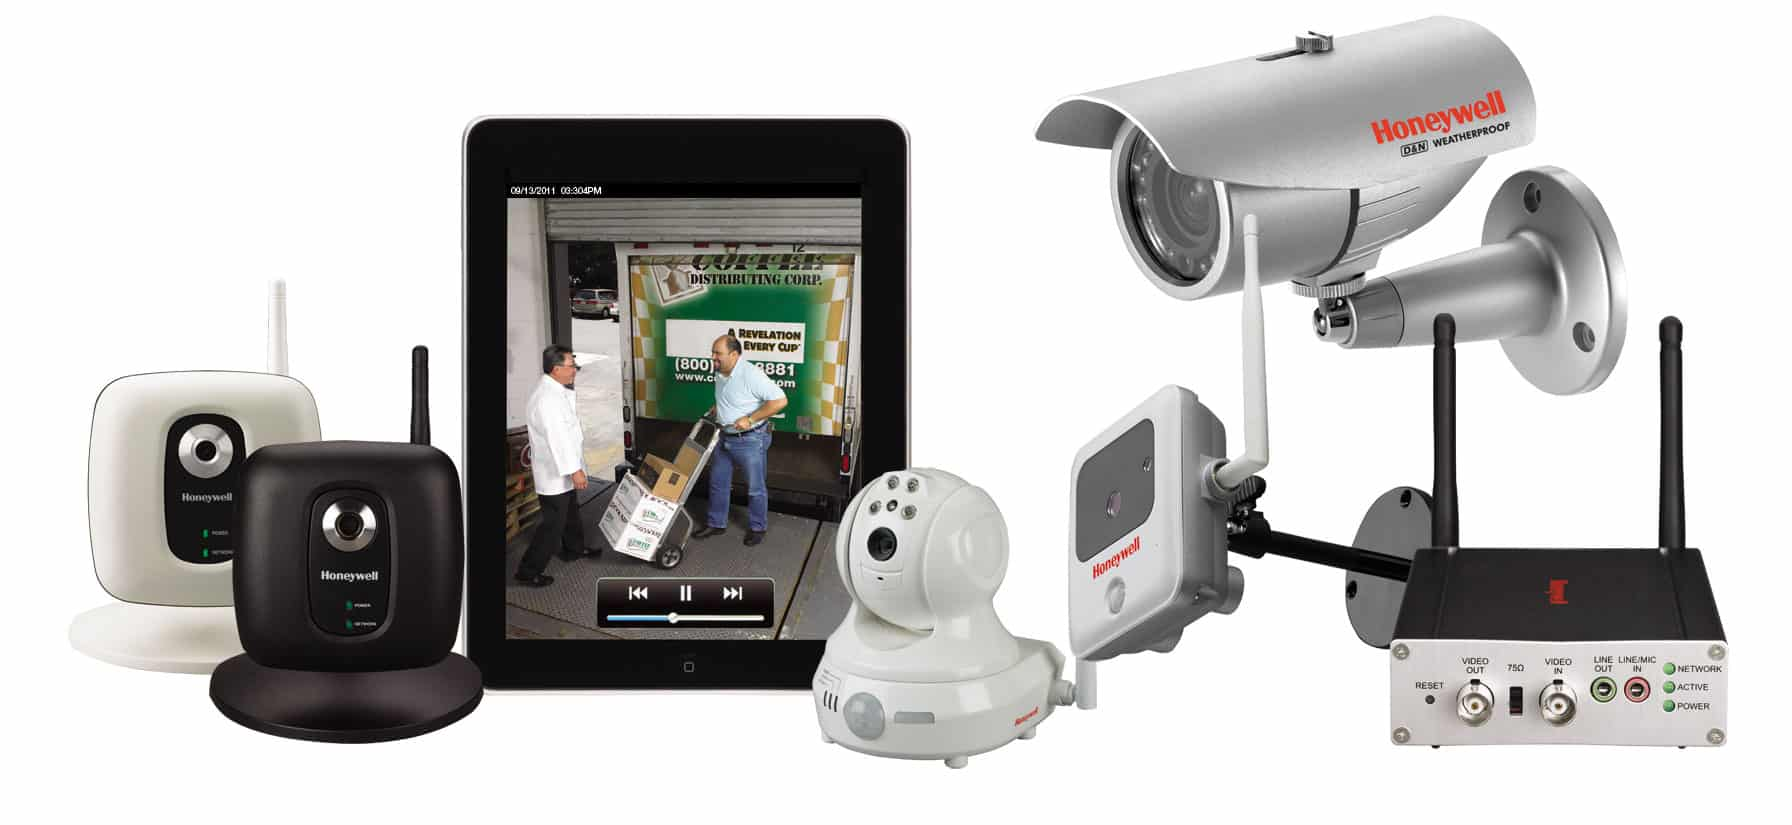 Total Control Of Security Security One Alarm Systems